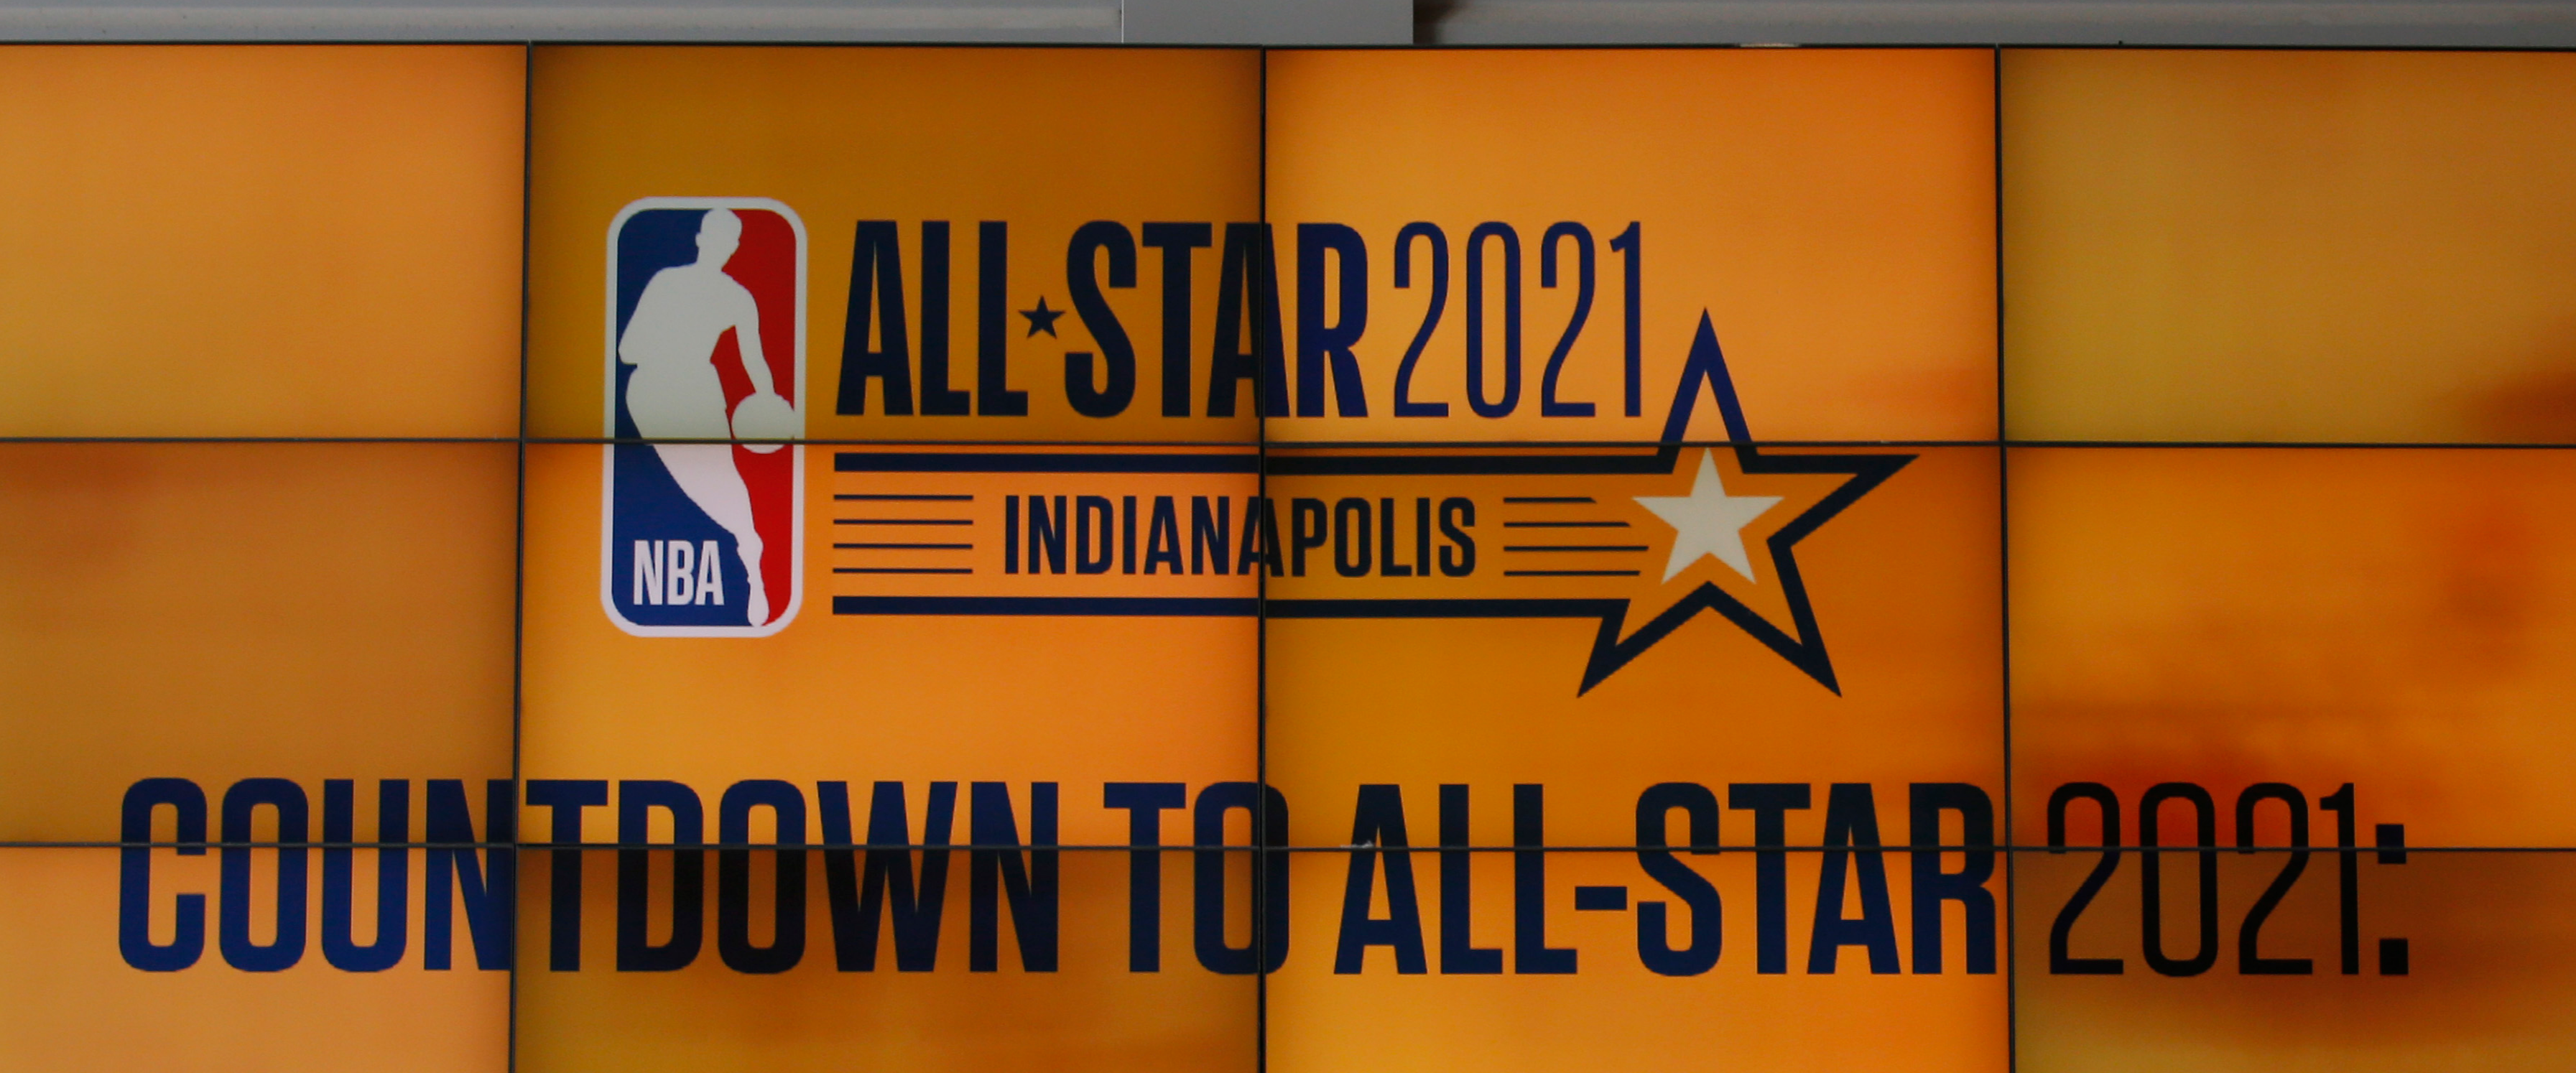 The NBA All-Star Game is on!